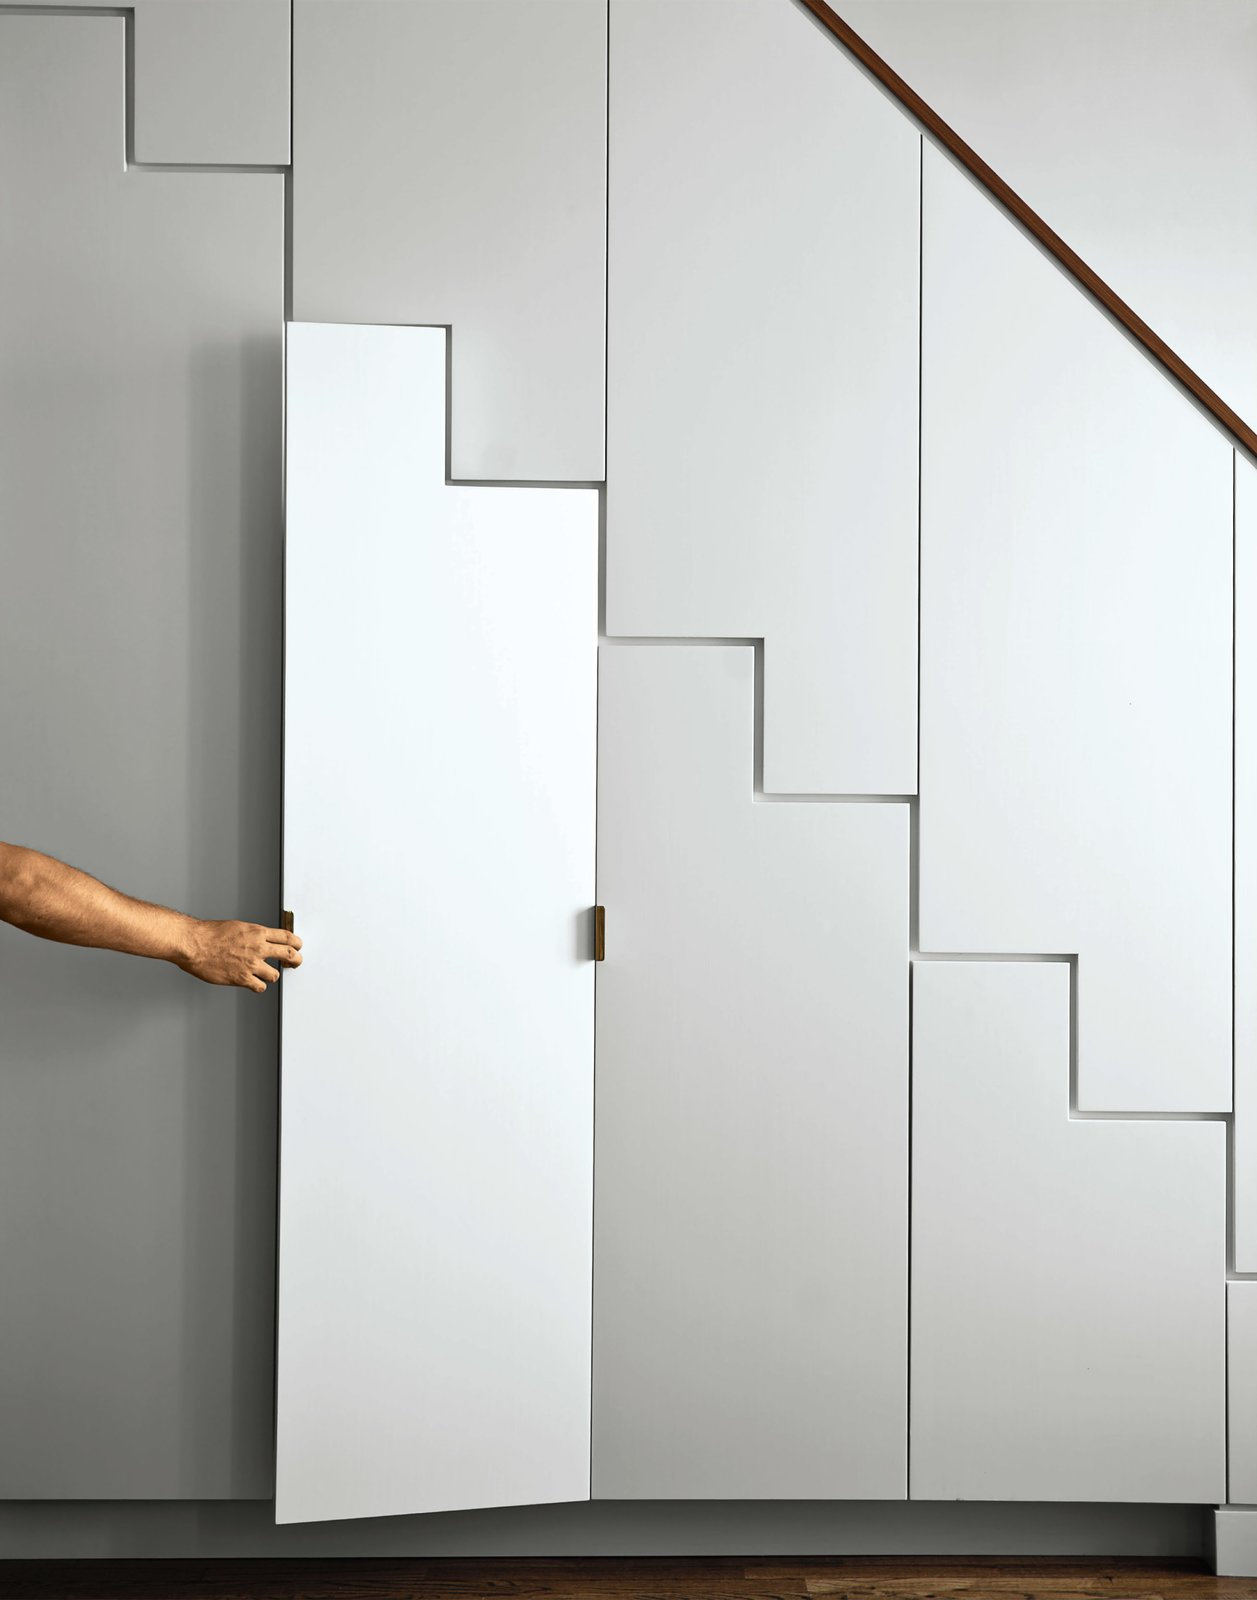 The apartment's main stairwell, disguised as a Shaker cabinet–meets–Japanese tansu stair, houses storage for kitchen ephemera. The finish is hand-painted and accessorized with raw brass hardware.  Storage Solutions: 7 Hidden Closets by Diana Budds from A Minimal Yet Mighty Brooklyn Apartment